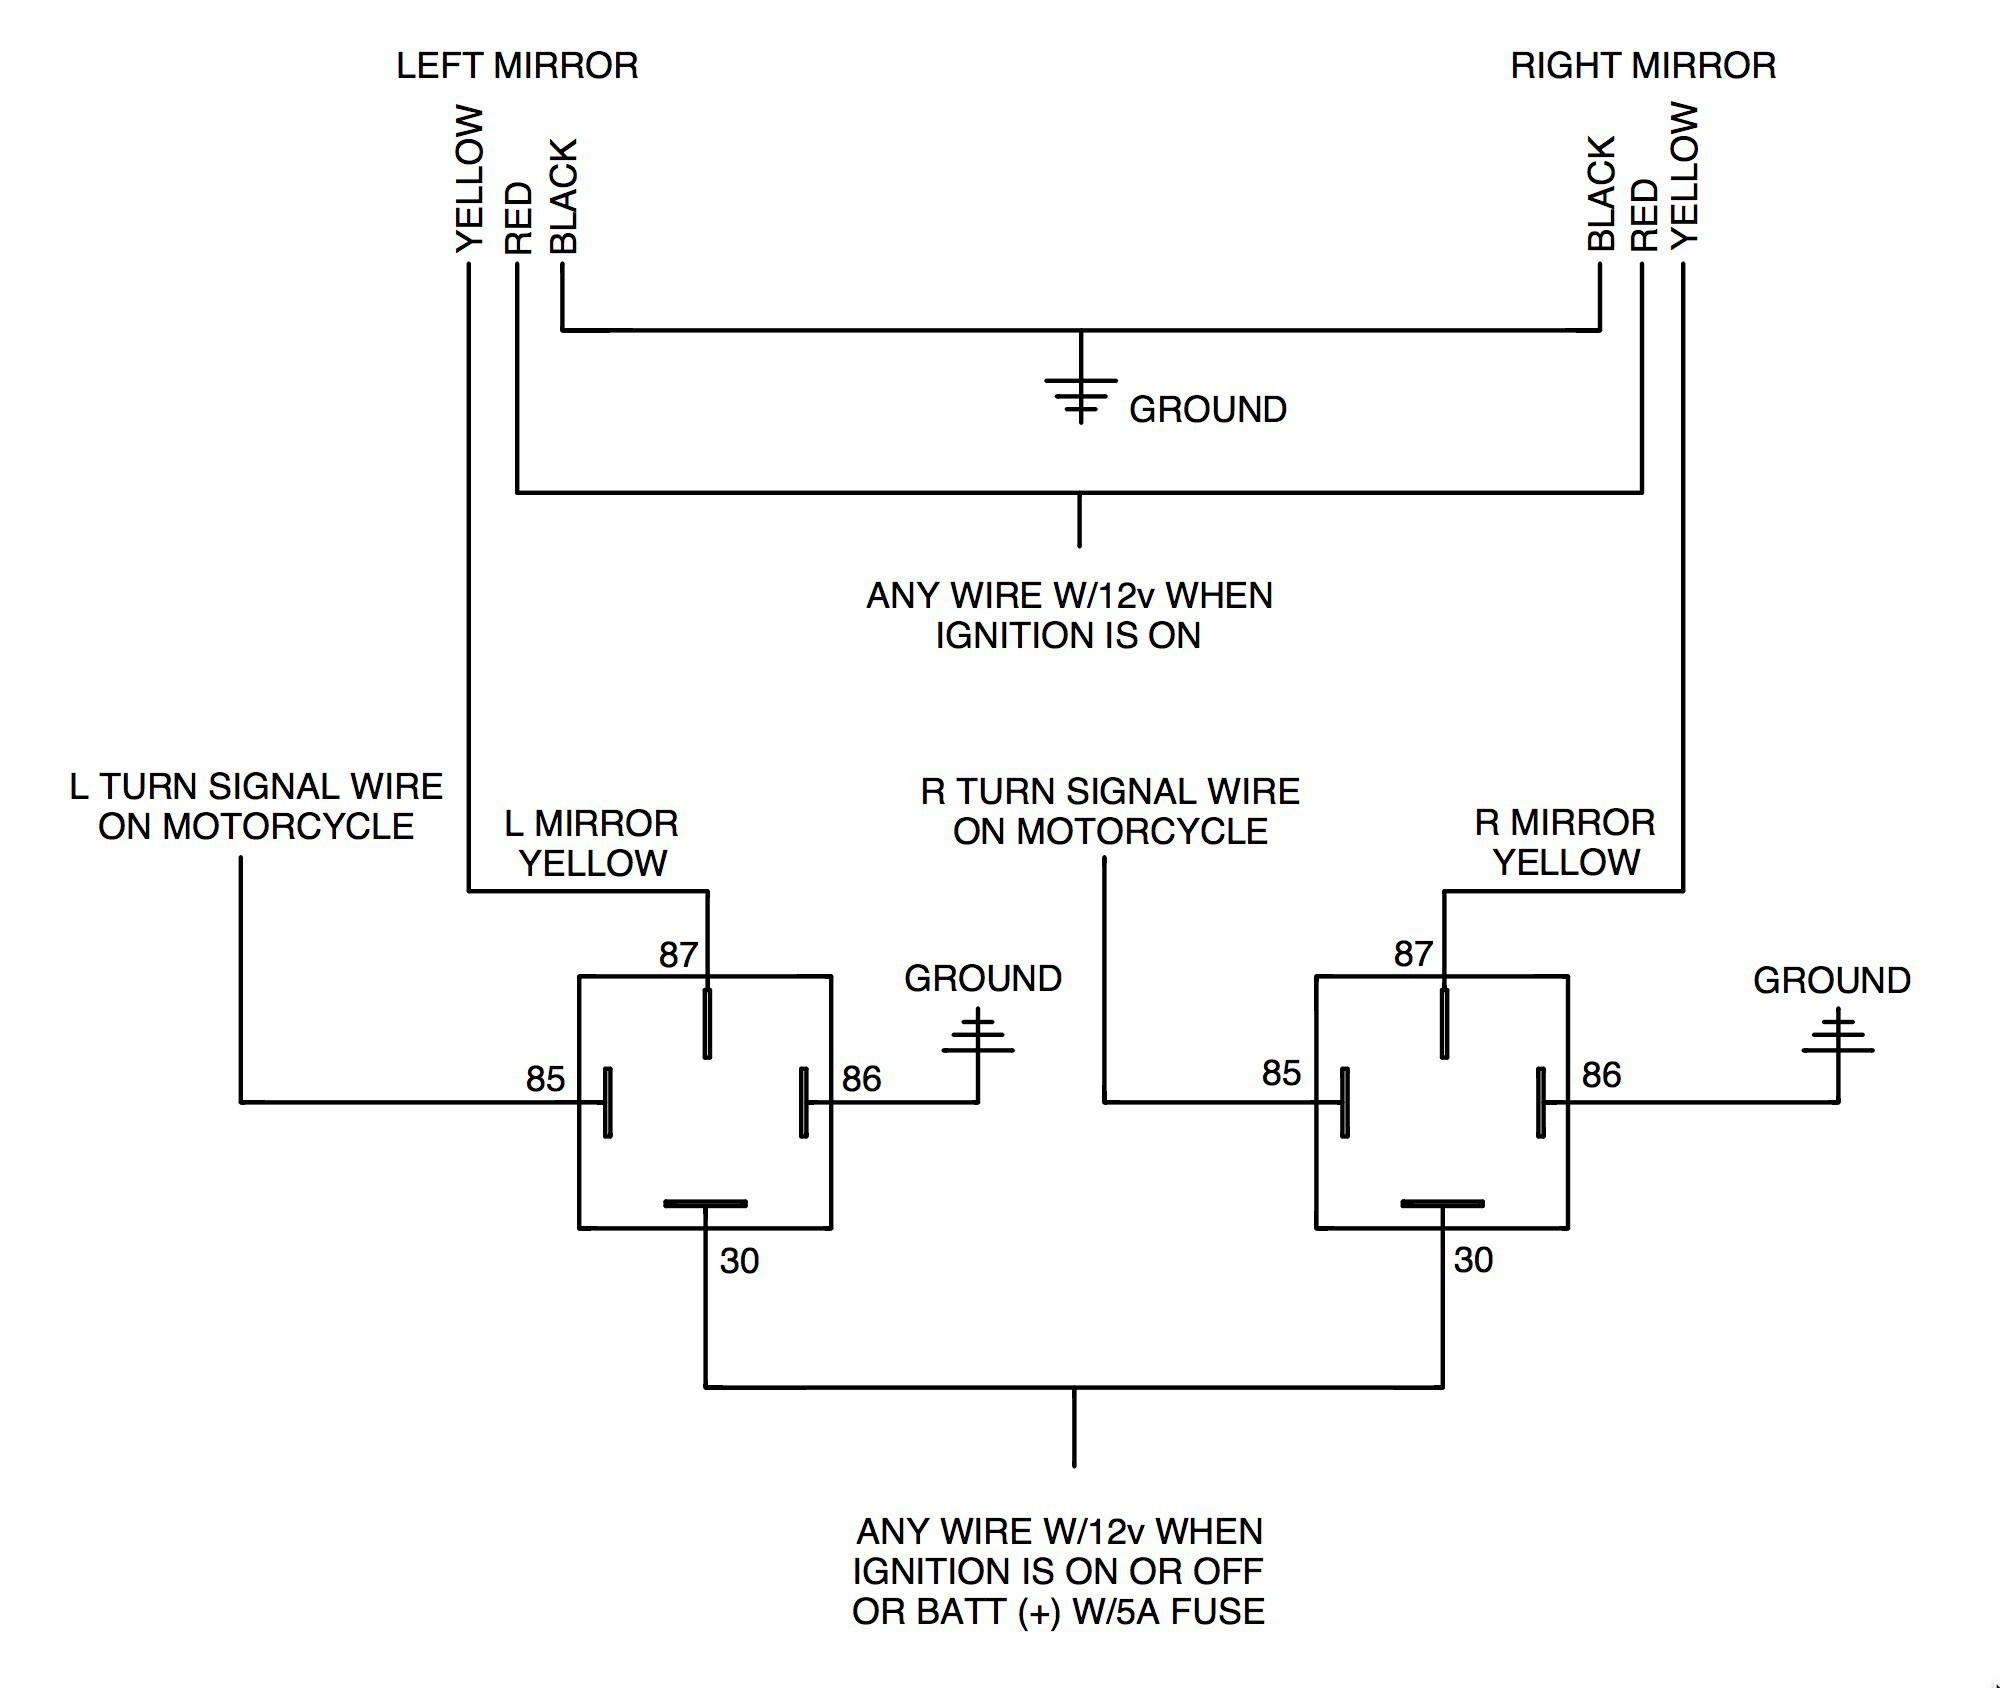 Brake And Turn Signal Wiring Diagram from detoxicrecenze.com